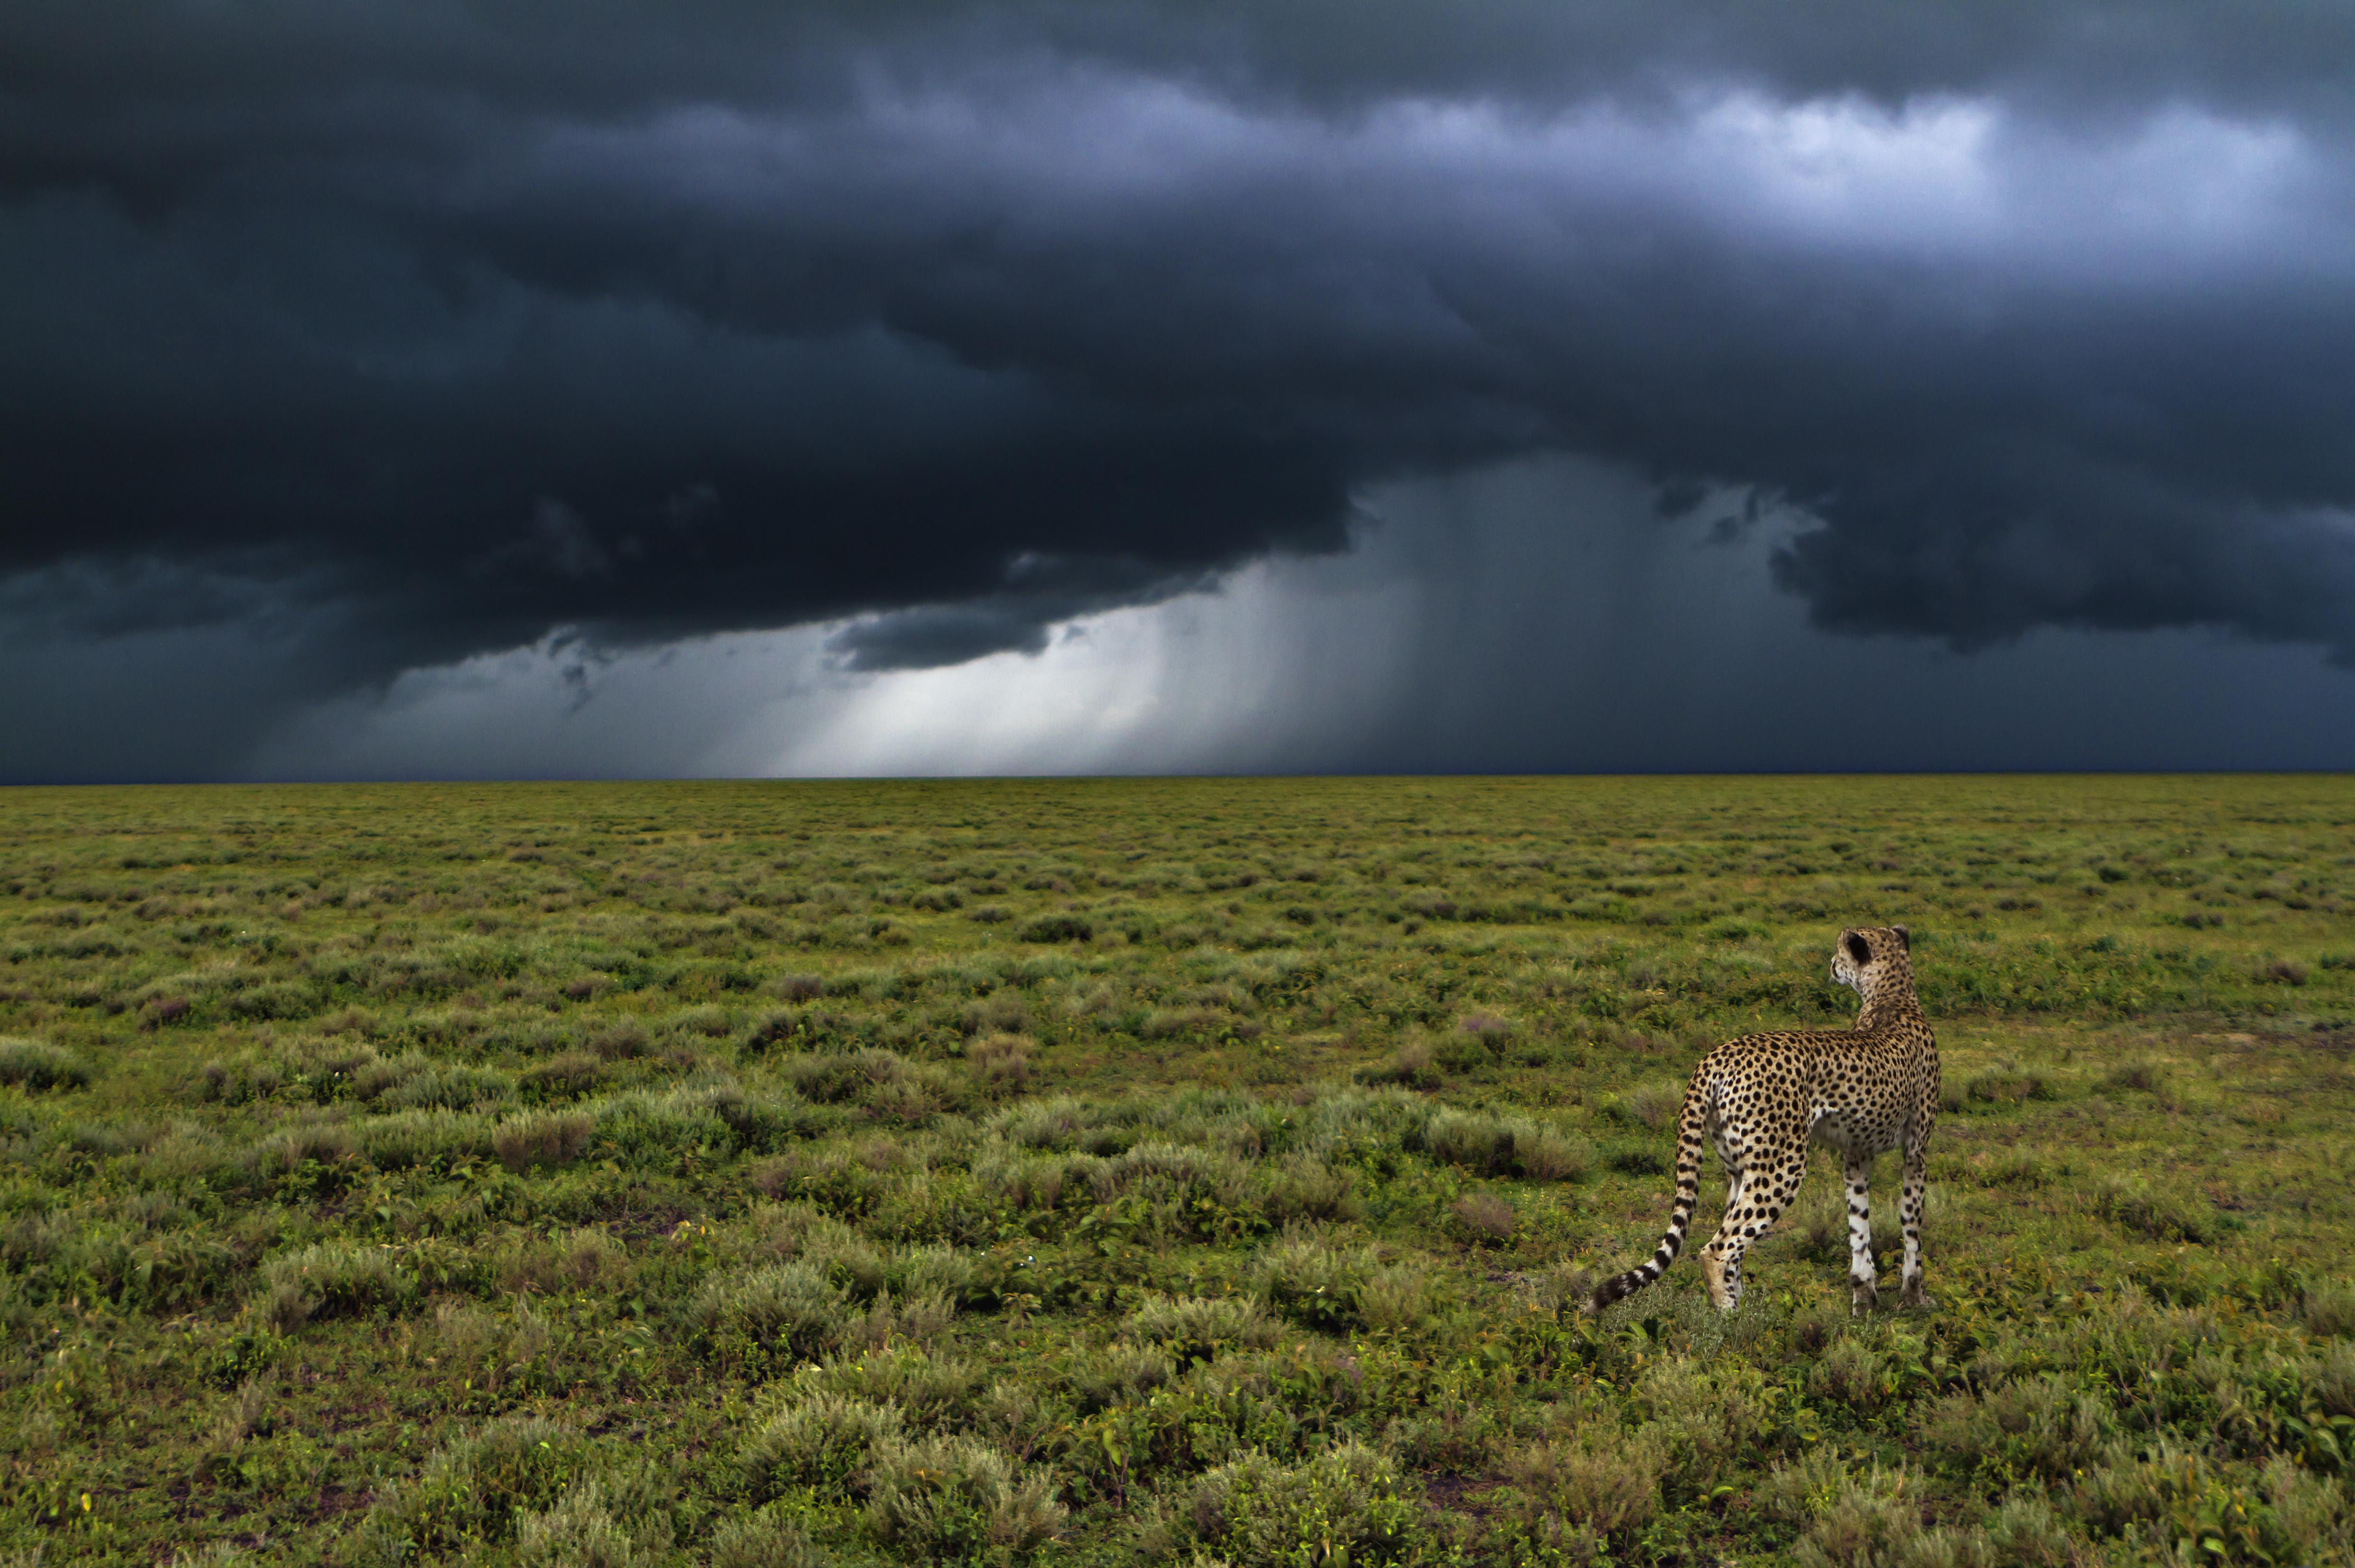 Thunderstorm with cheetah photo by Uwe Skrzypczak